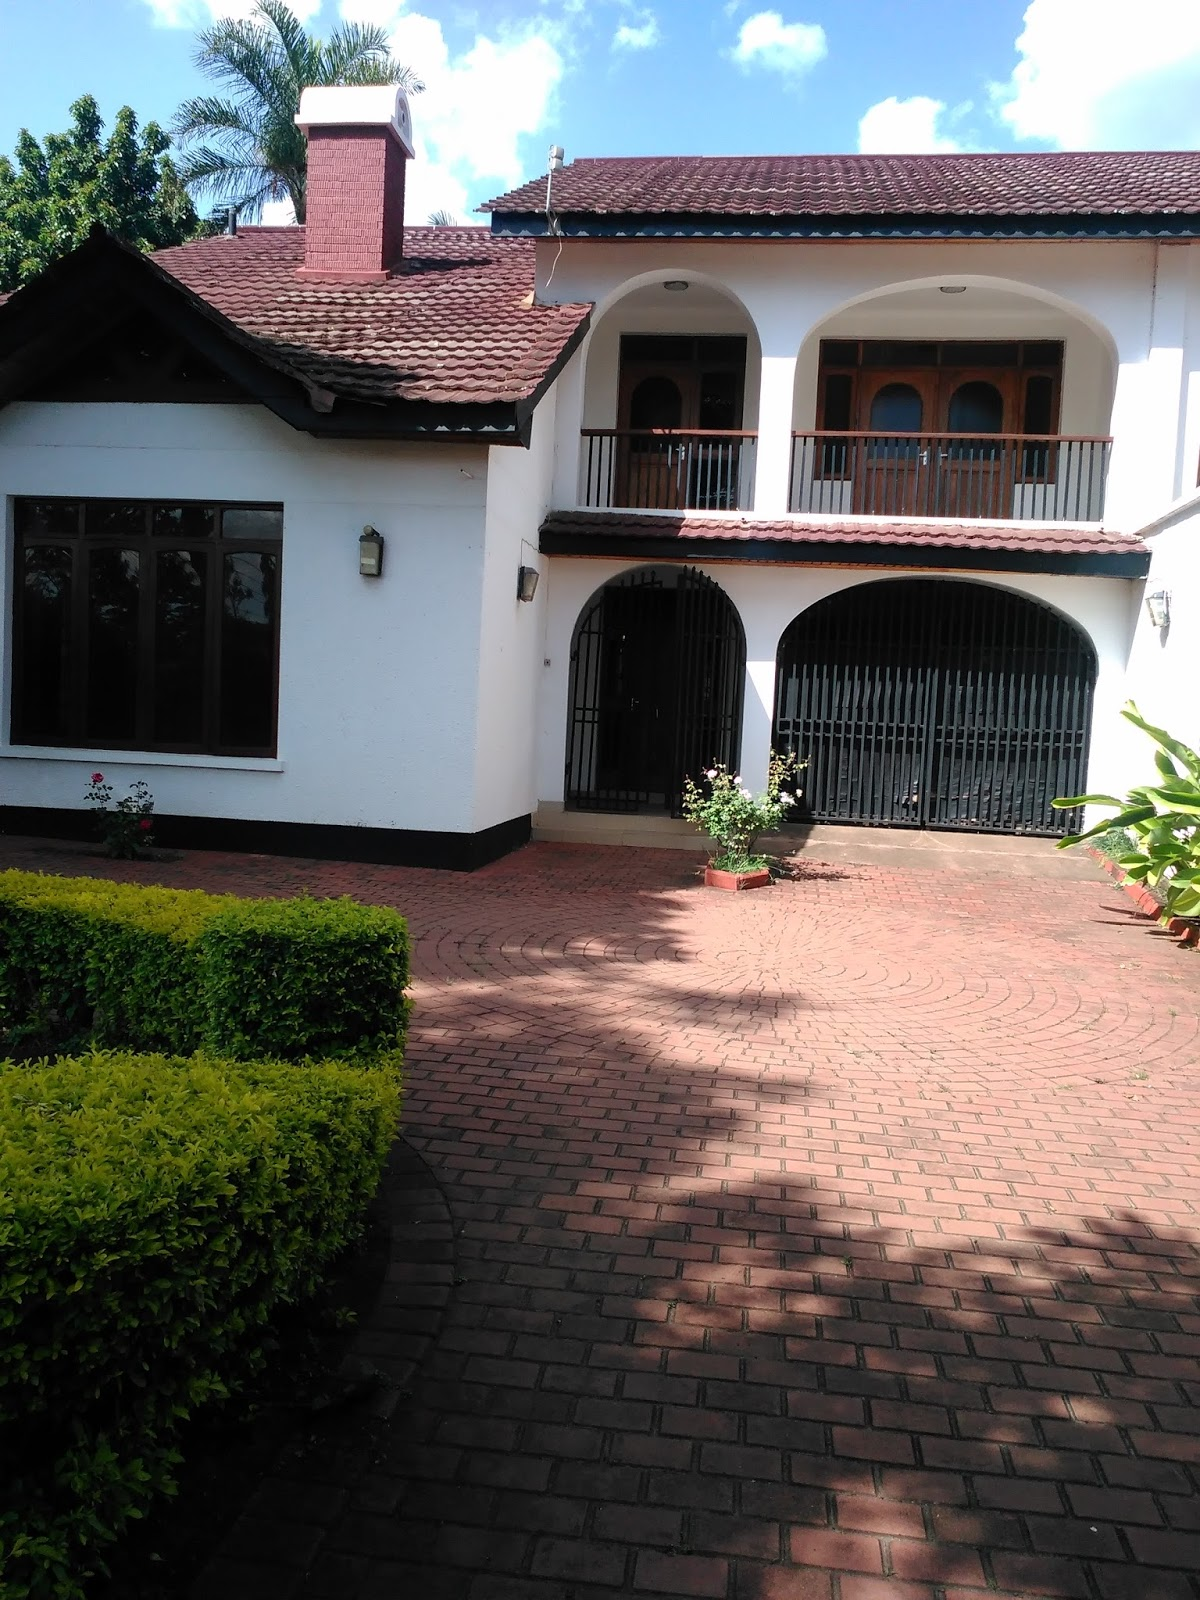 Rent house in tanzania arusha rent houses houses for sale B house